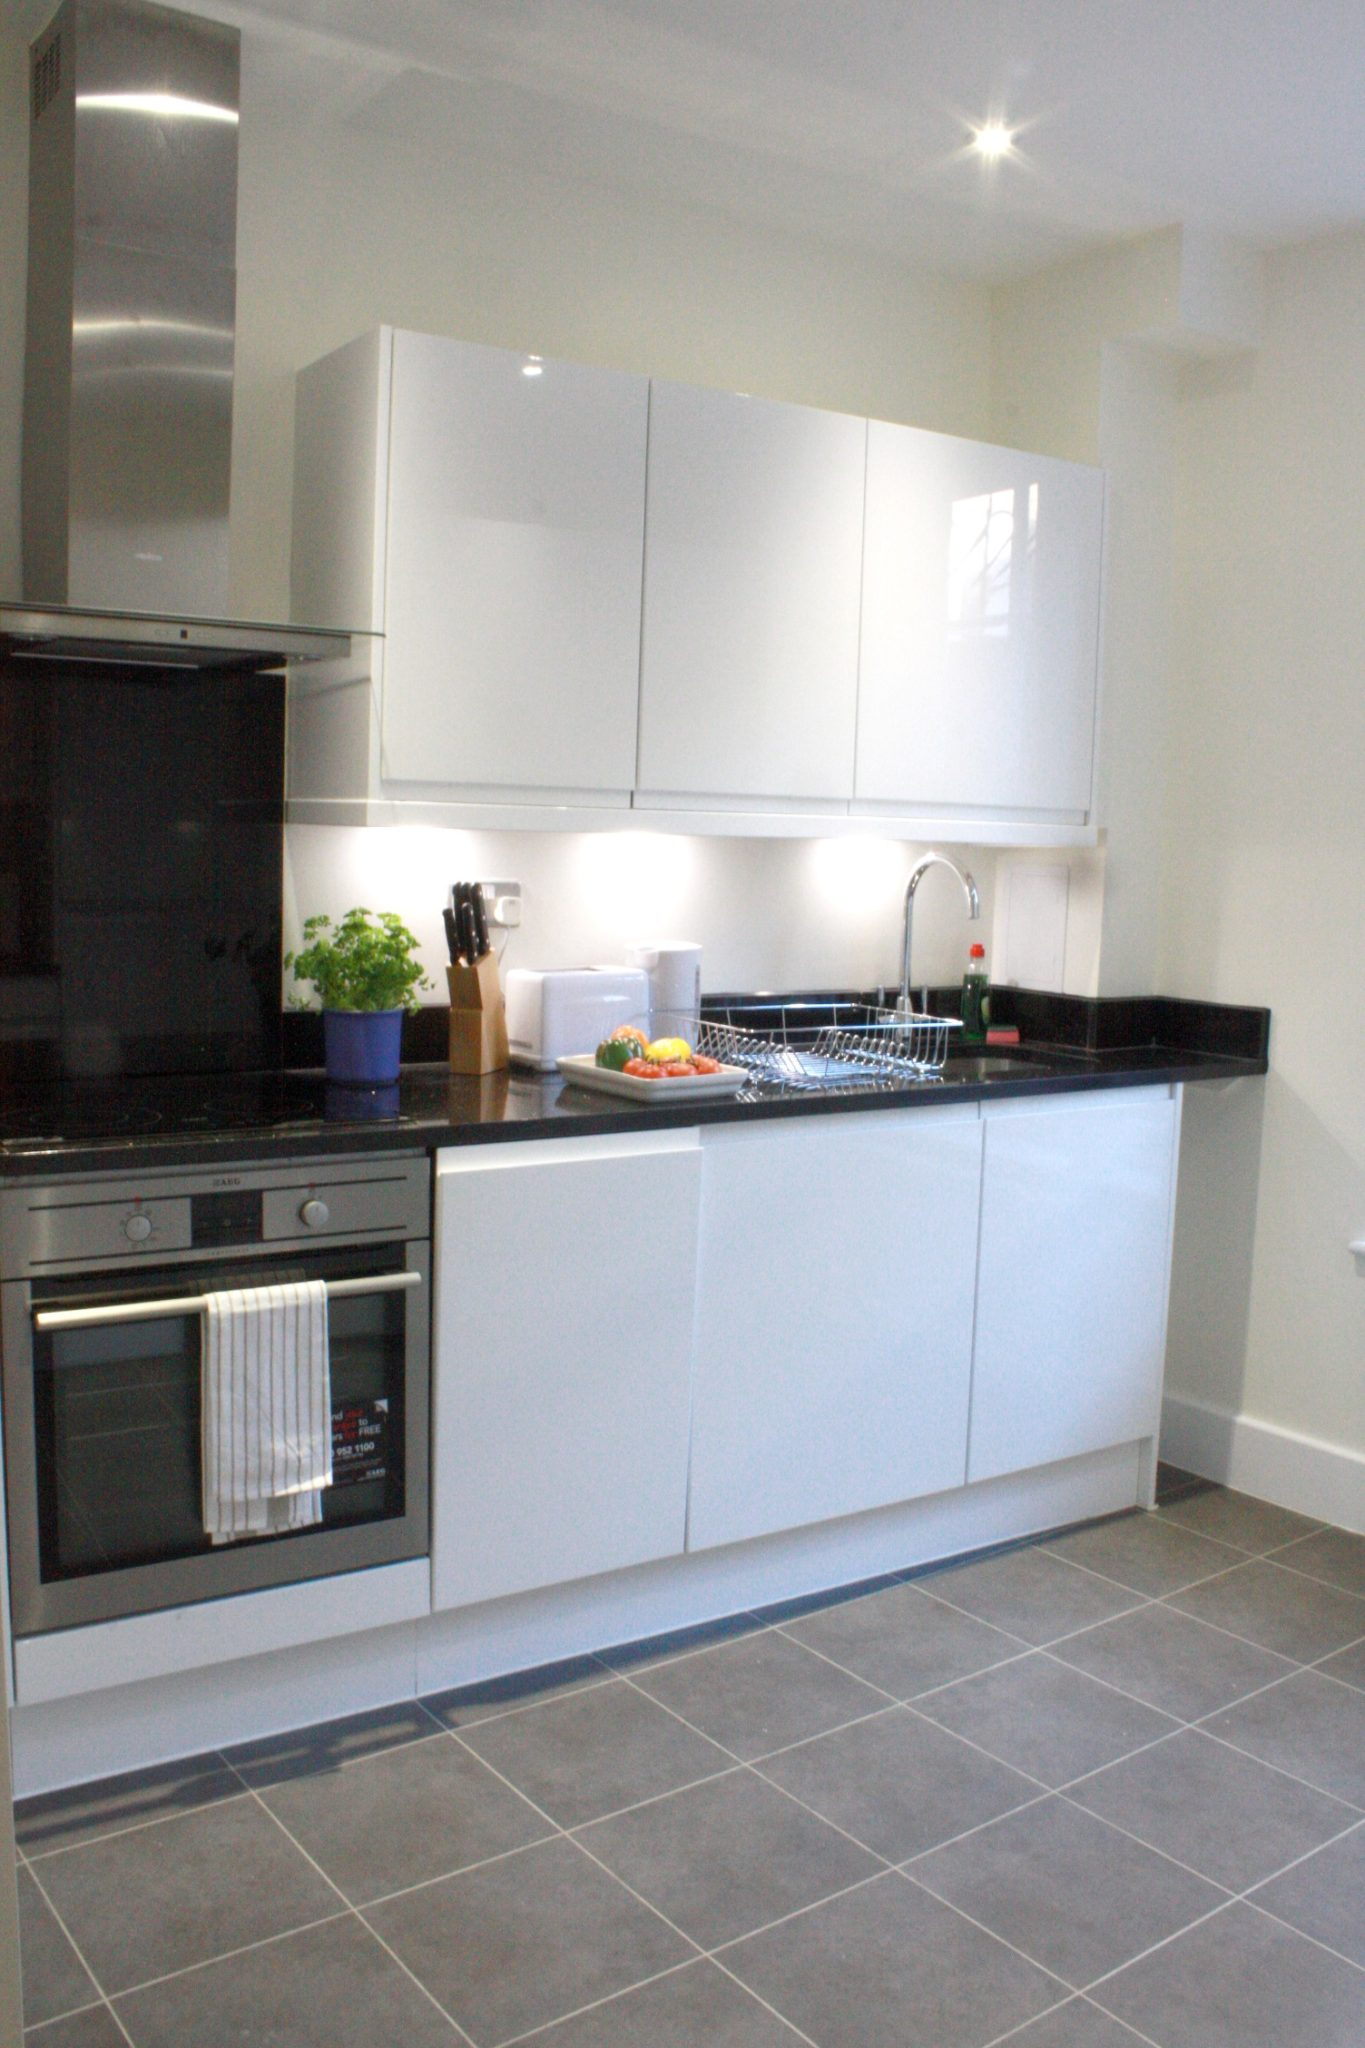 Liverpool Street Serviced Accommodation Artillery Lane Apartments Fully equipped Kitchen